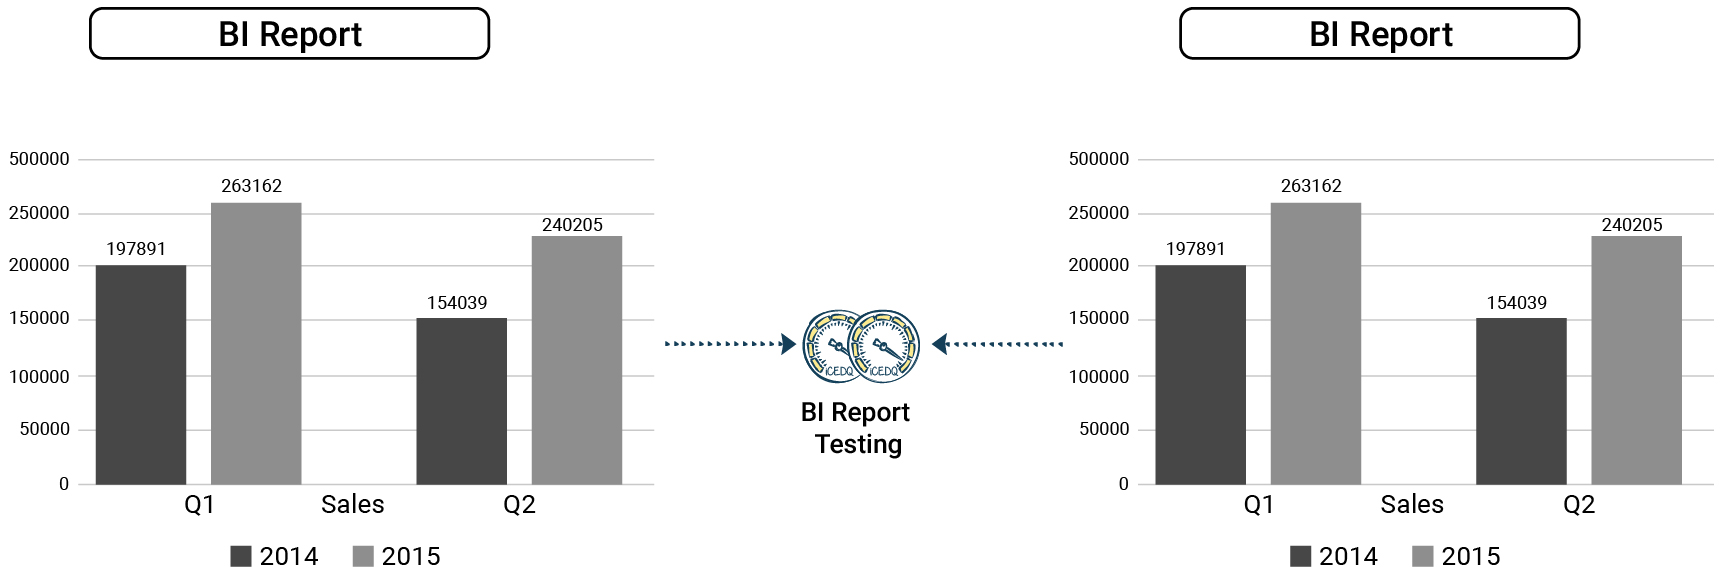 BI report testing can be automated by iCEDQ engine.